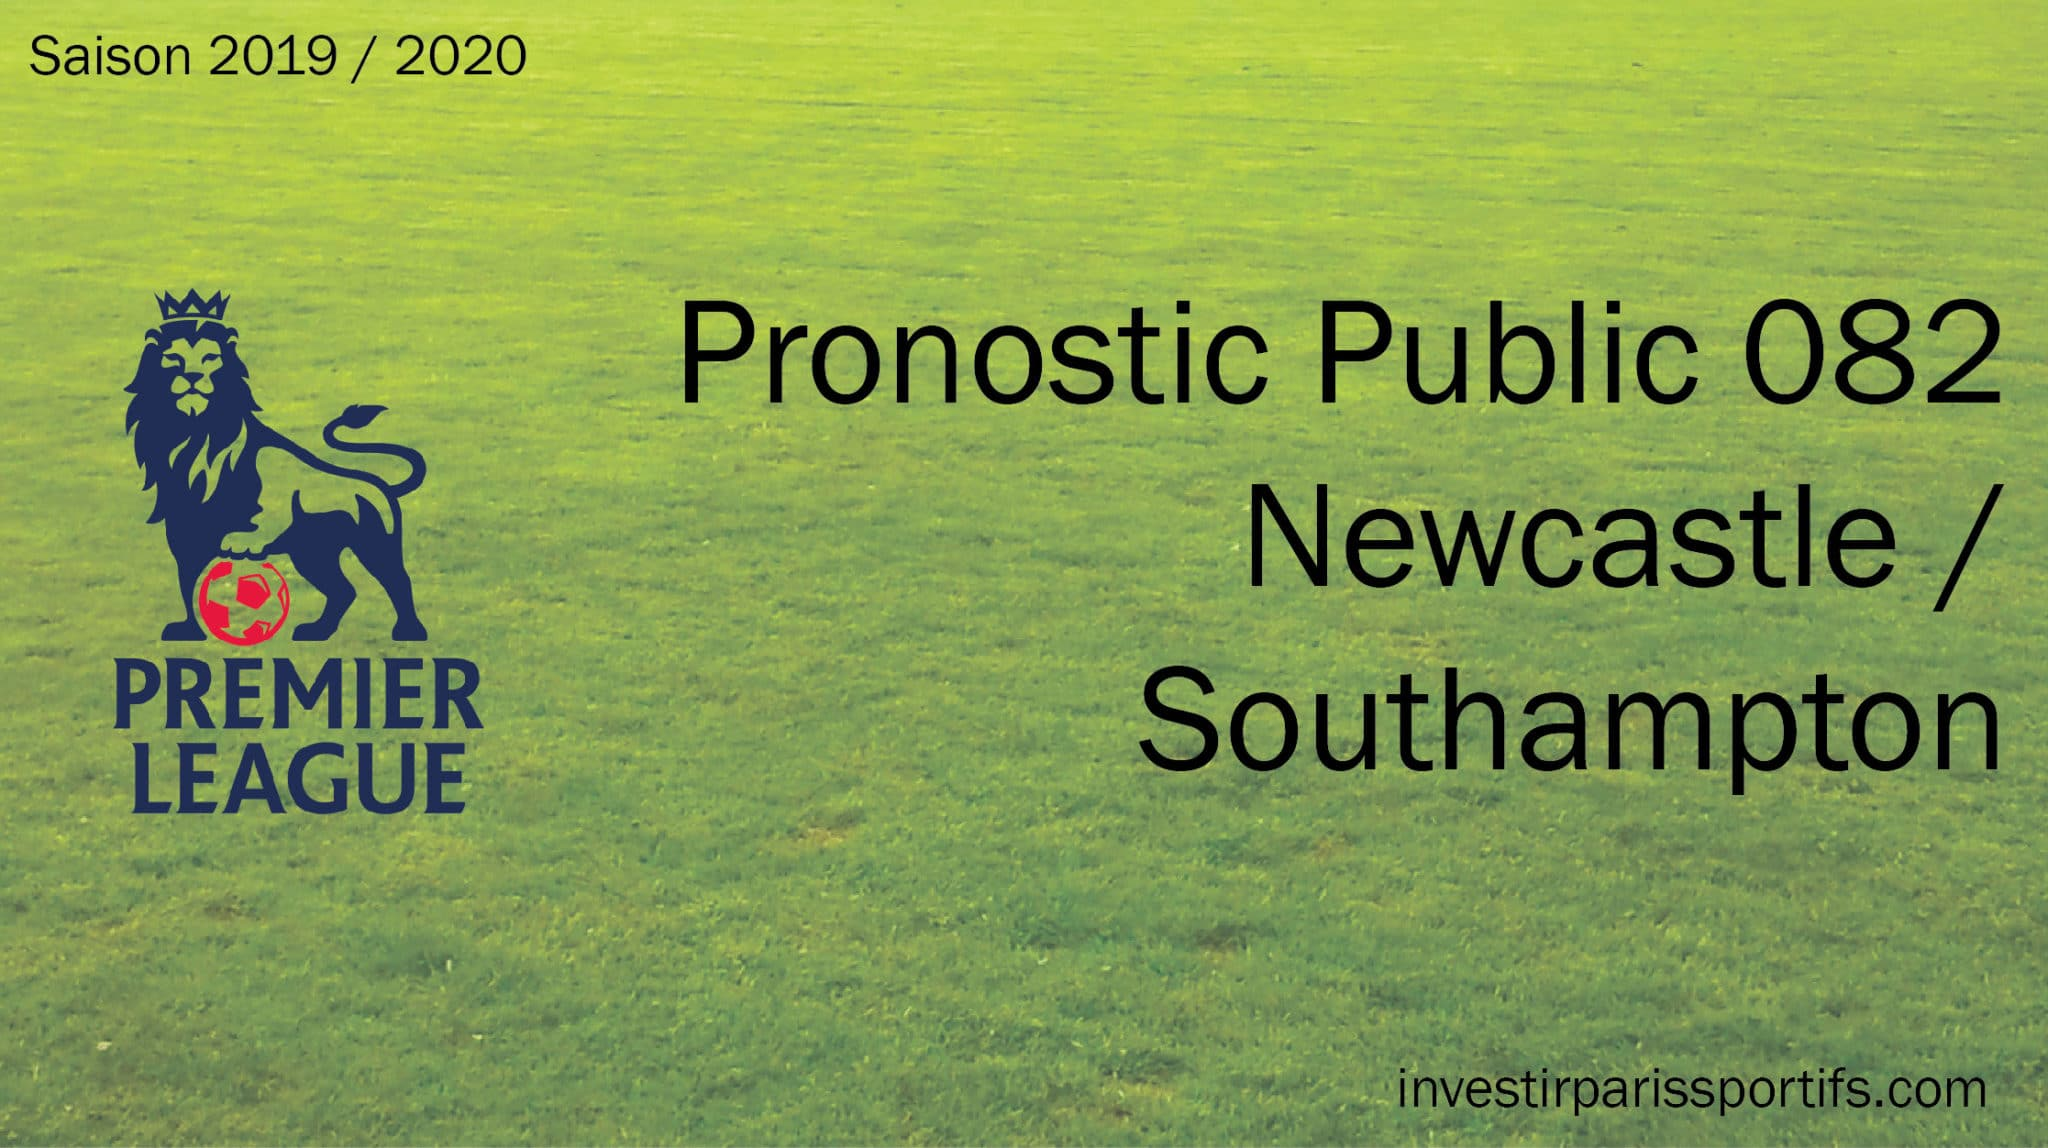 Pronostic 082 – Newcastle / Southampton – Premier League